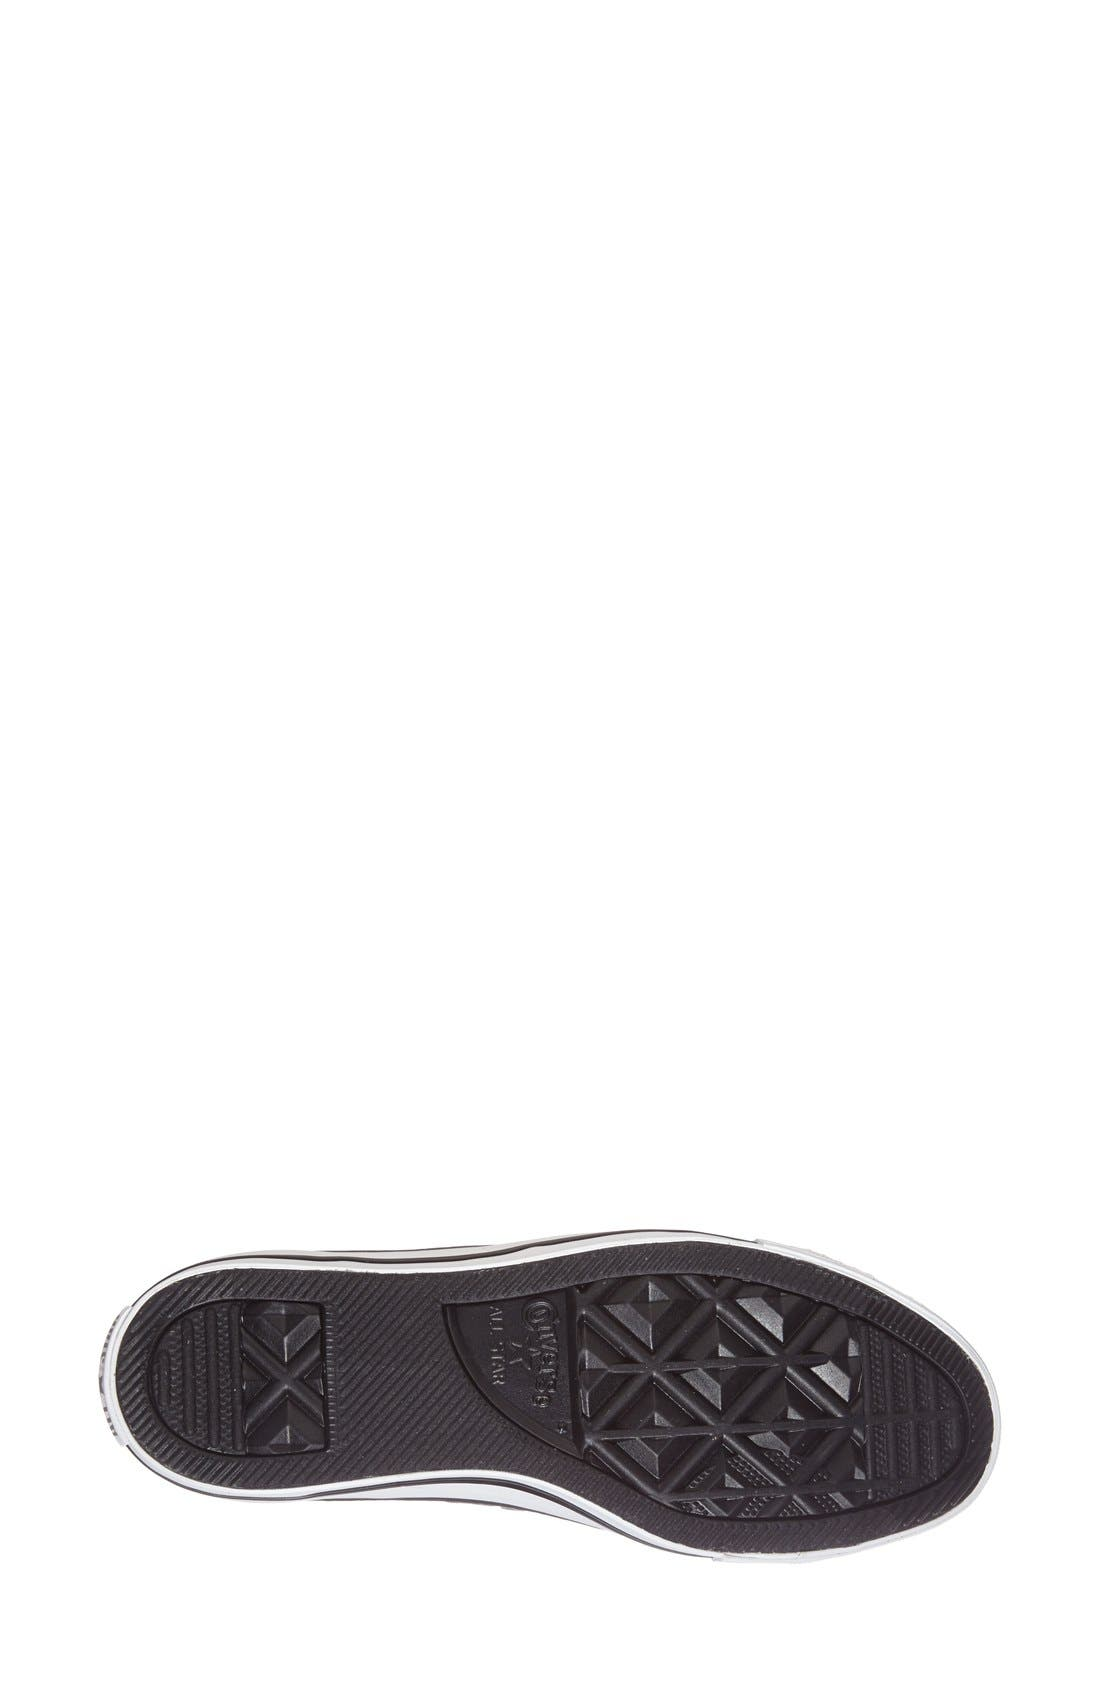 Alternate Image 4  - Converse Chuck Taylor® All Star® Plaid Low Top Sneaker (Women)